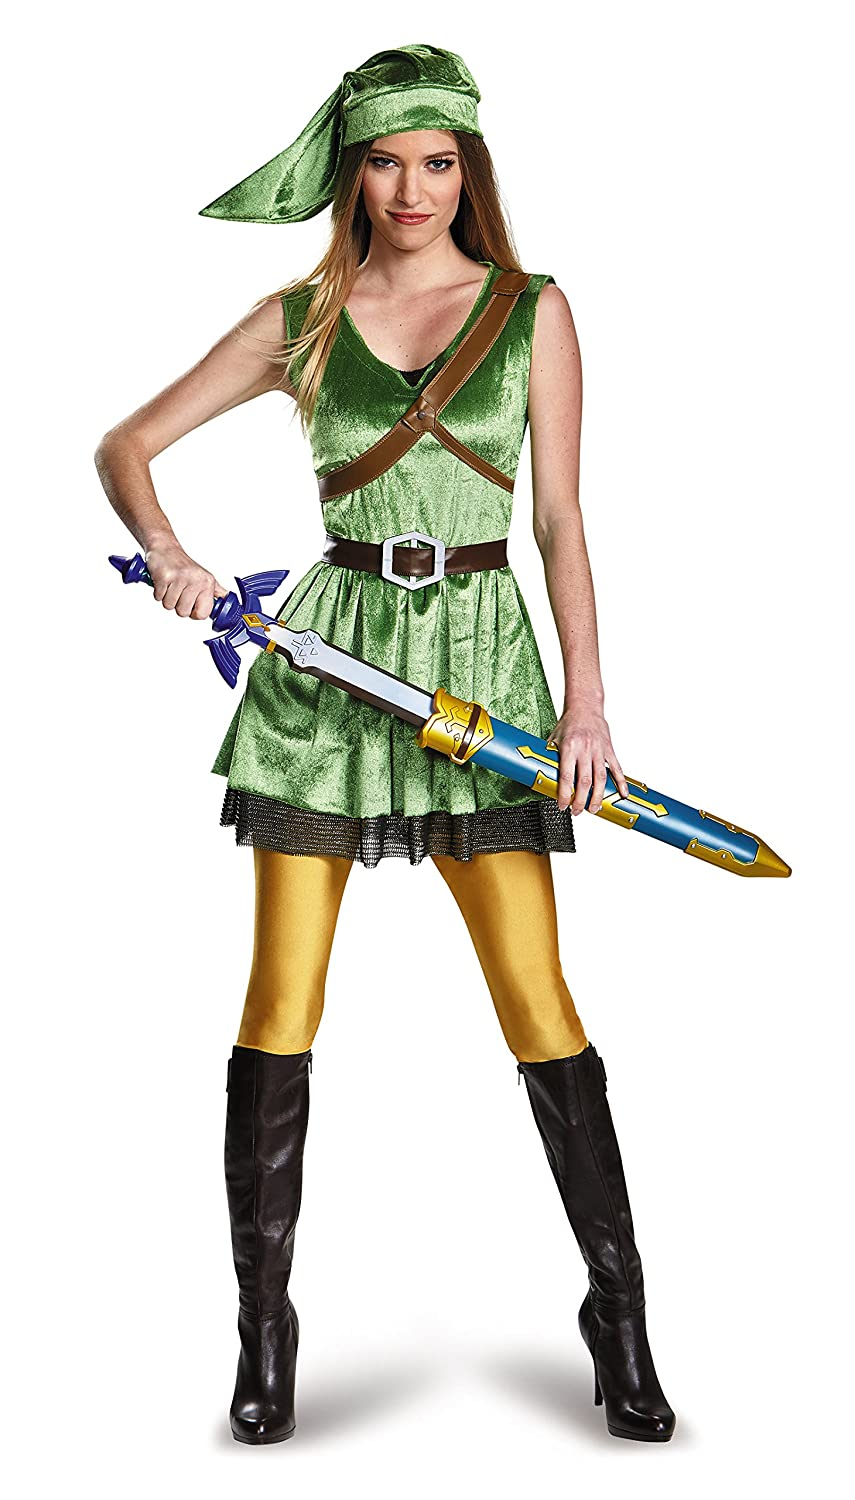 servicio honesto Small 4-6 Legend of Zelda Link Costume Costume Costume Wohombres Adult Small 4-6  encuentra tu favorito aquí